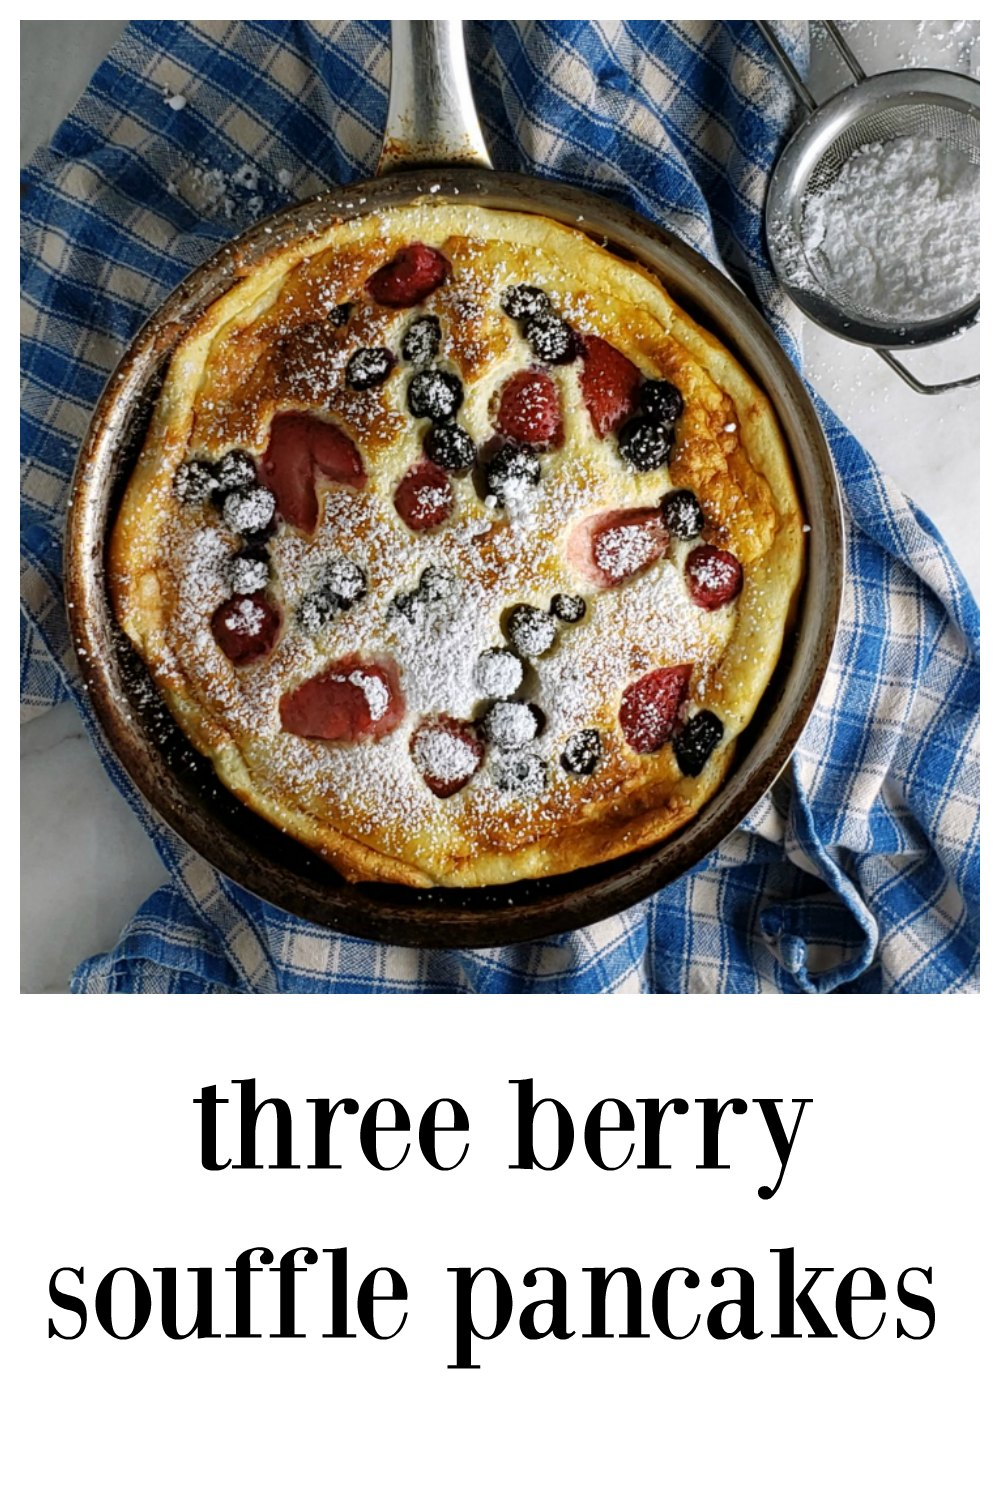 Berry Souffle Pancakes are light and airy perfection. The pancake is gorgeous and the berries transform to jammy deliciousness. #SoufflePancake #BerrySoufflePancakes #BreakfastRecipe #BrunchRecipe